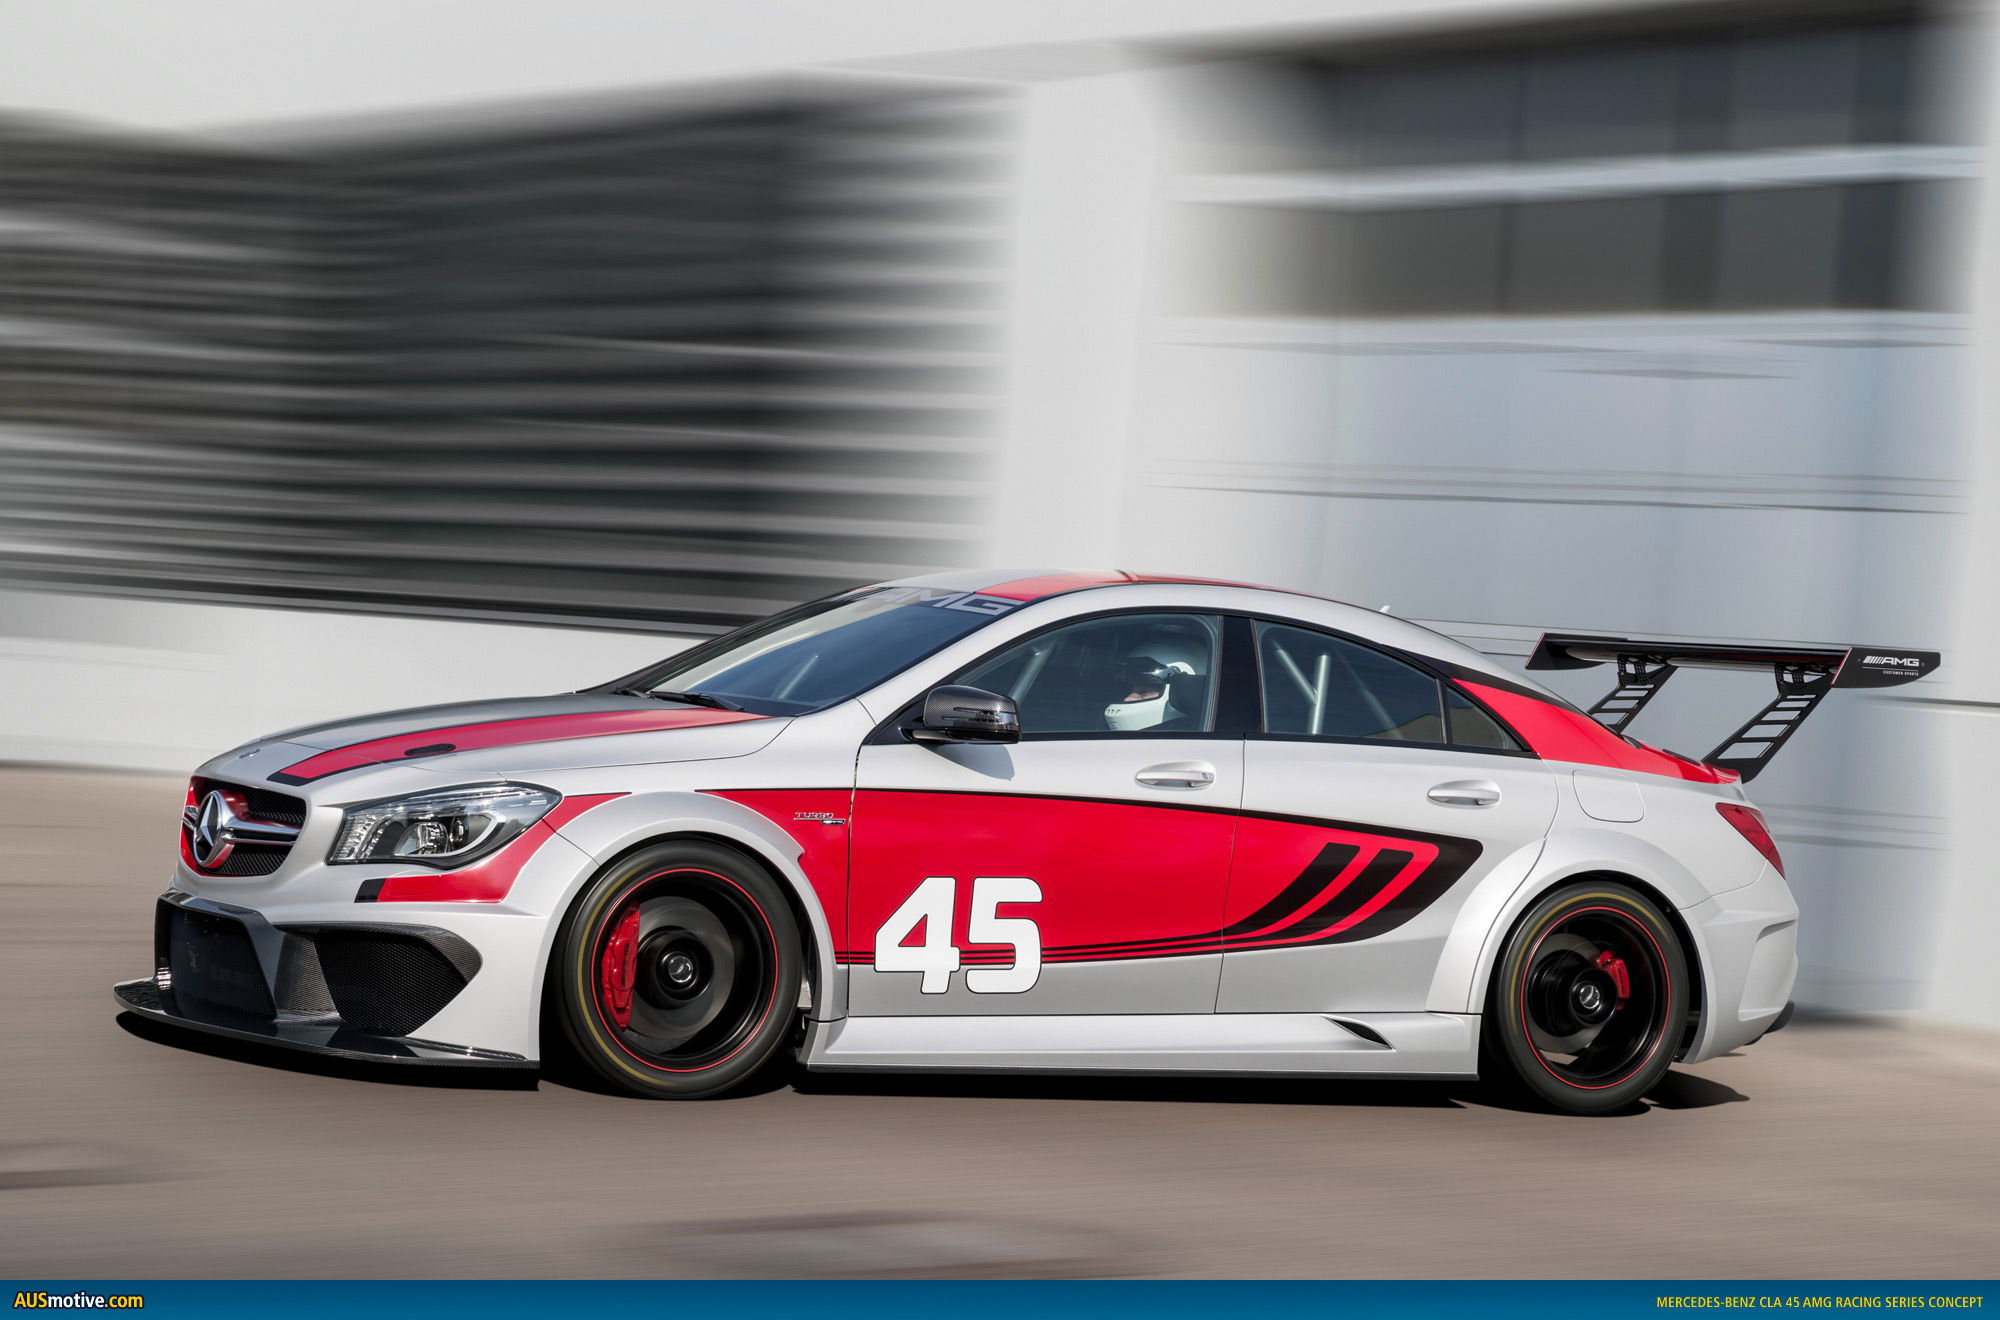 Mercedes cla 45 amg racing series concept for Mercedes benz amg cla 45